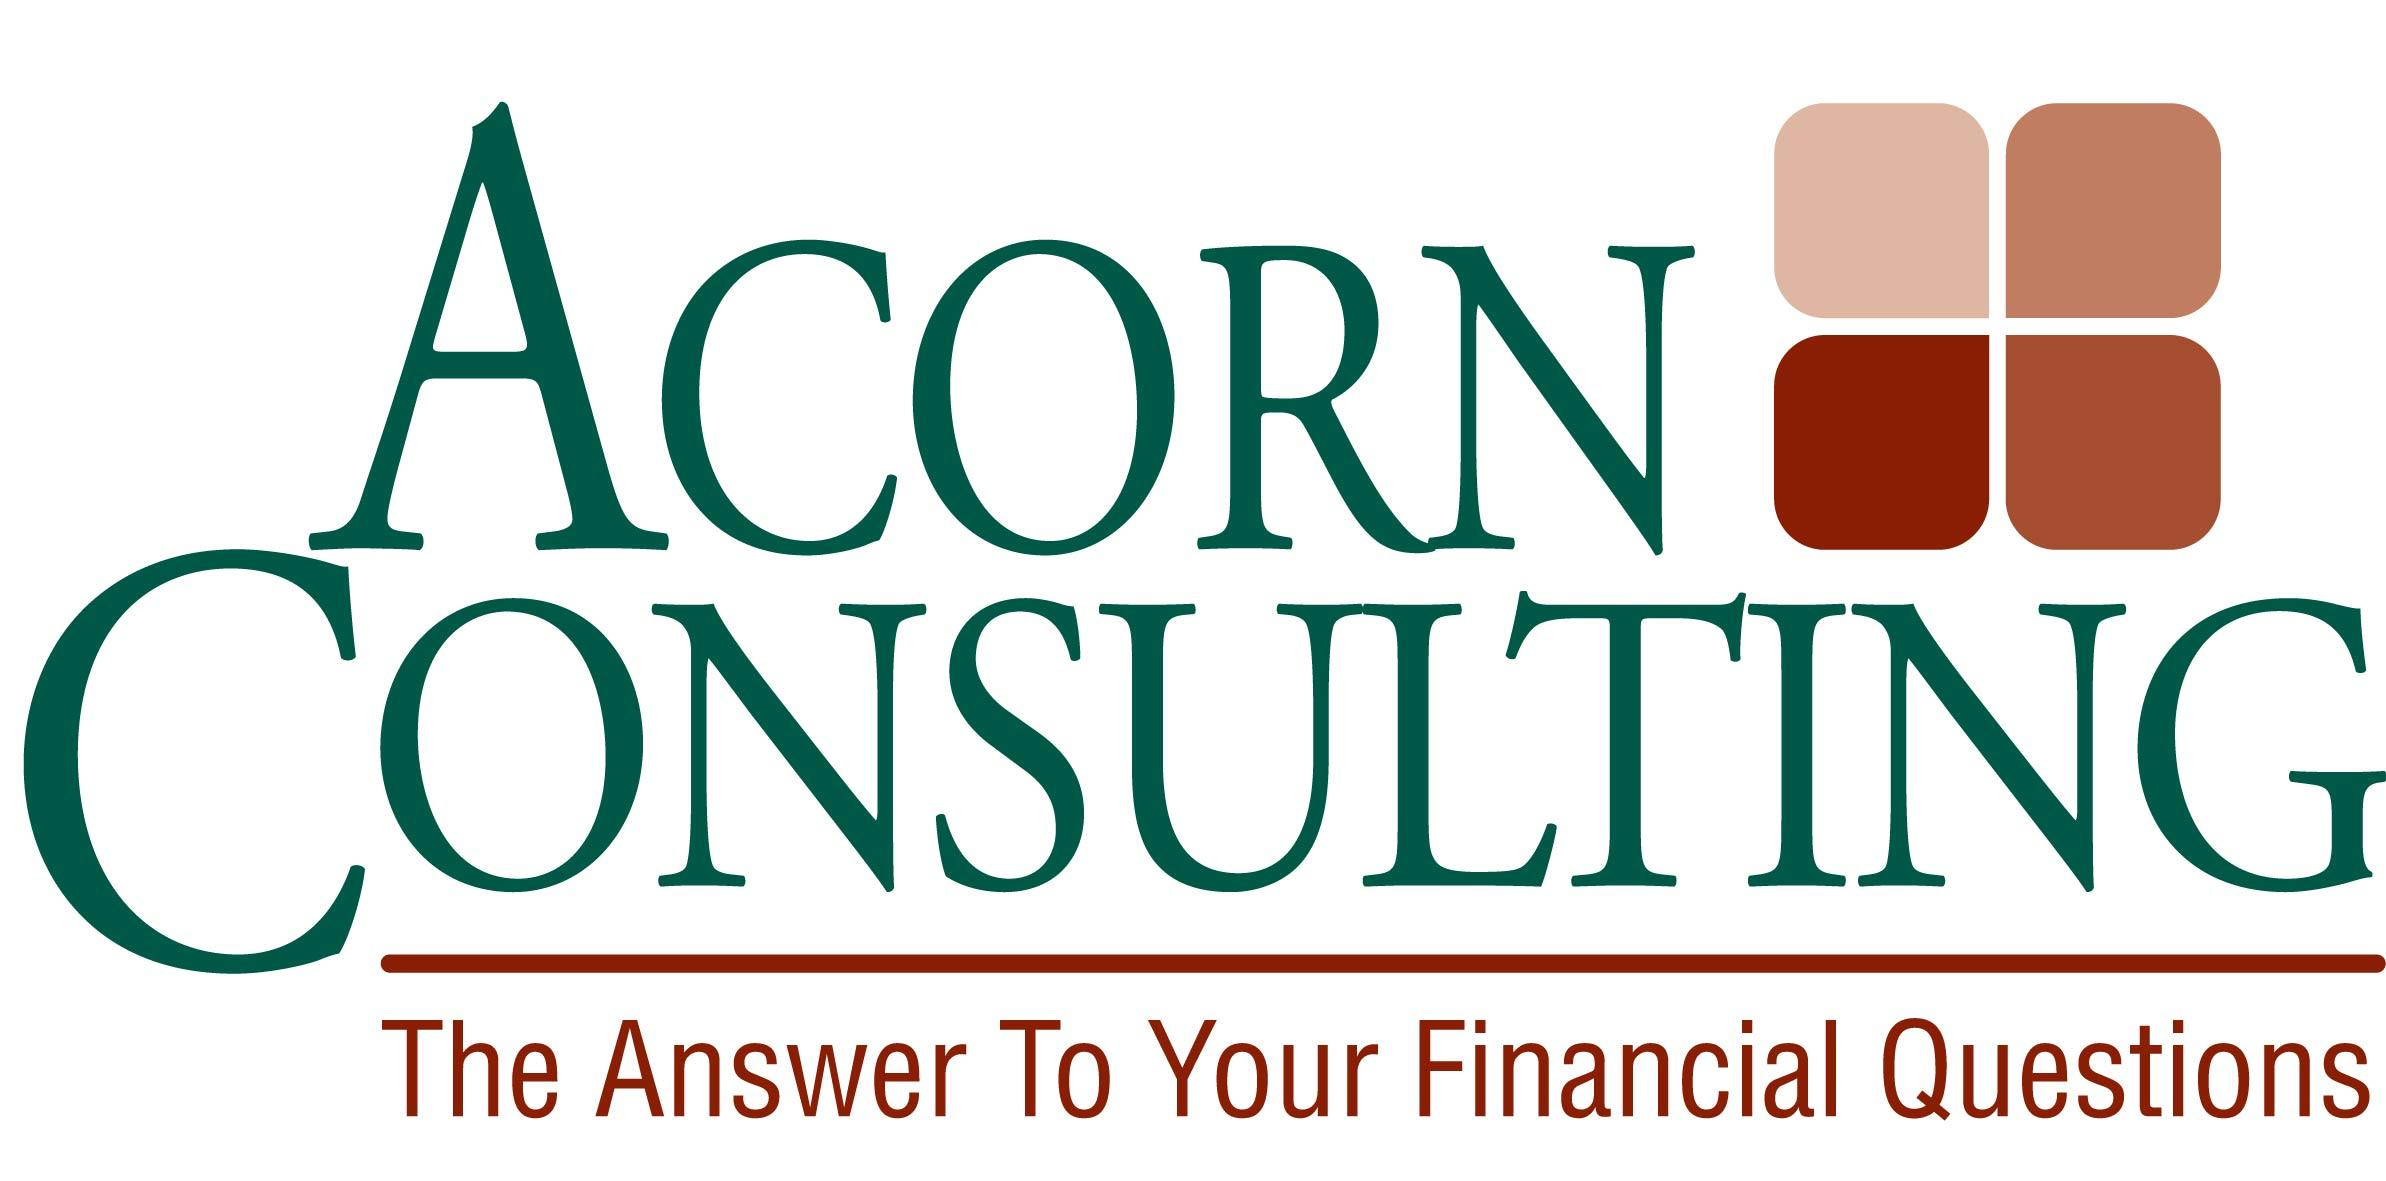 Acorn Consulting Services